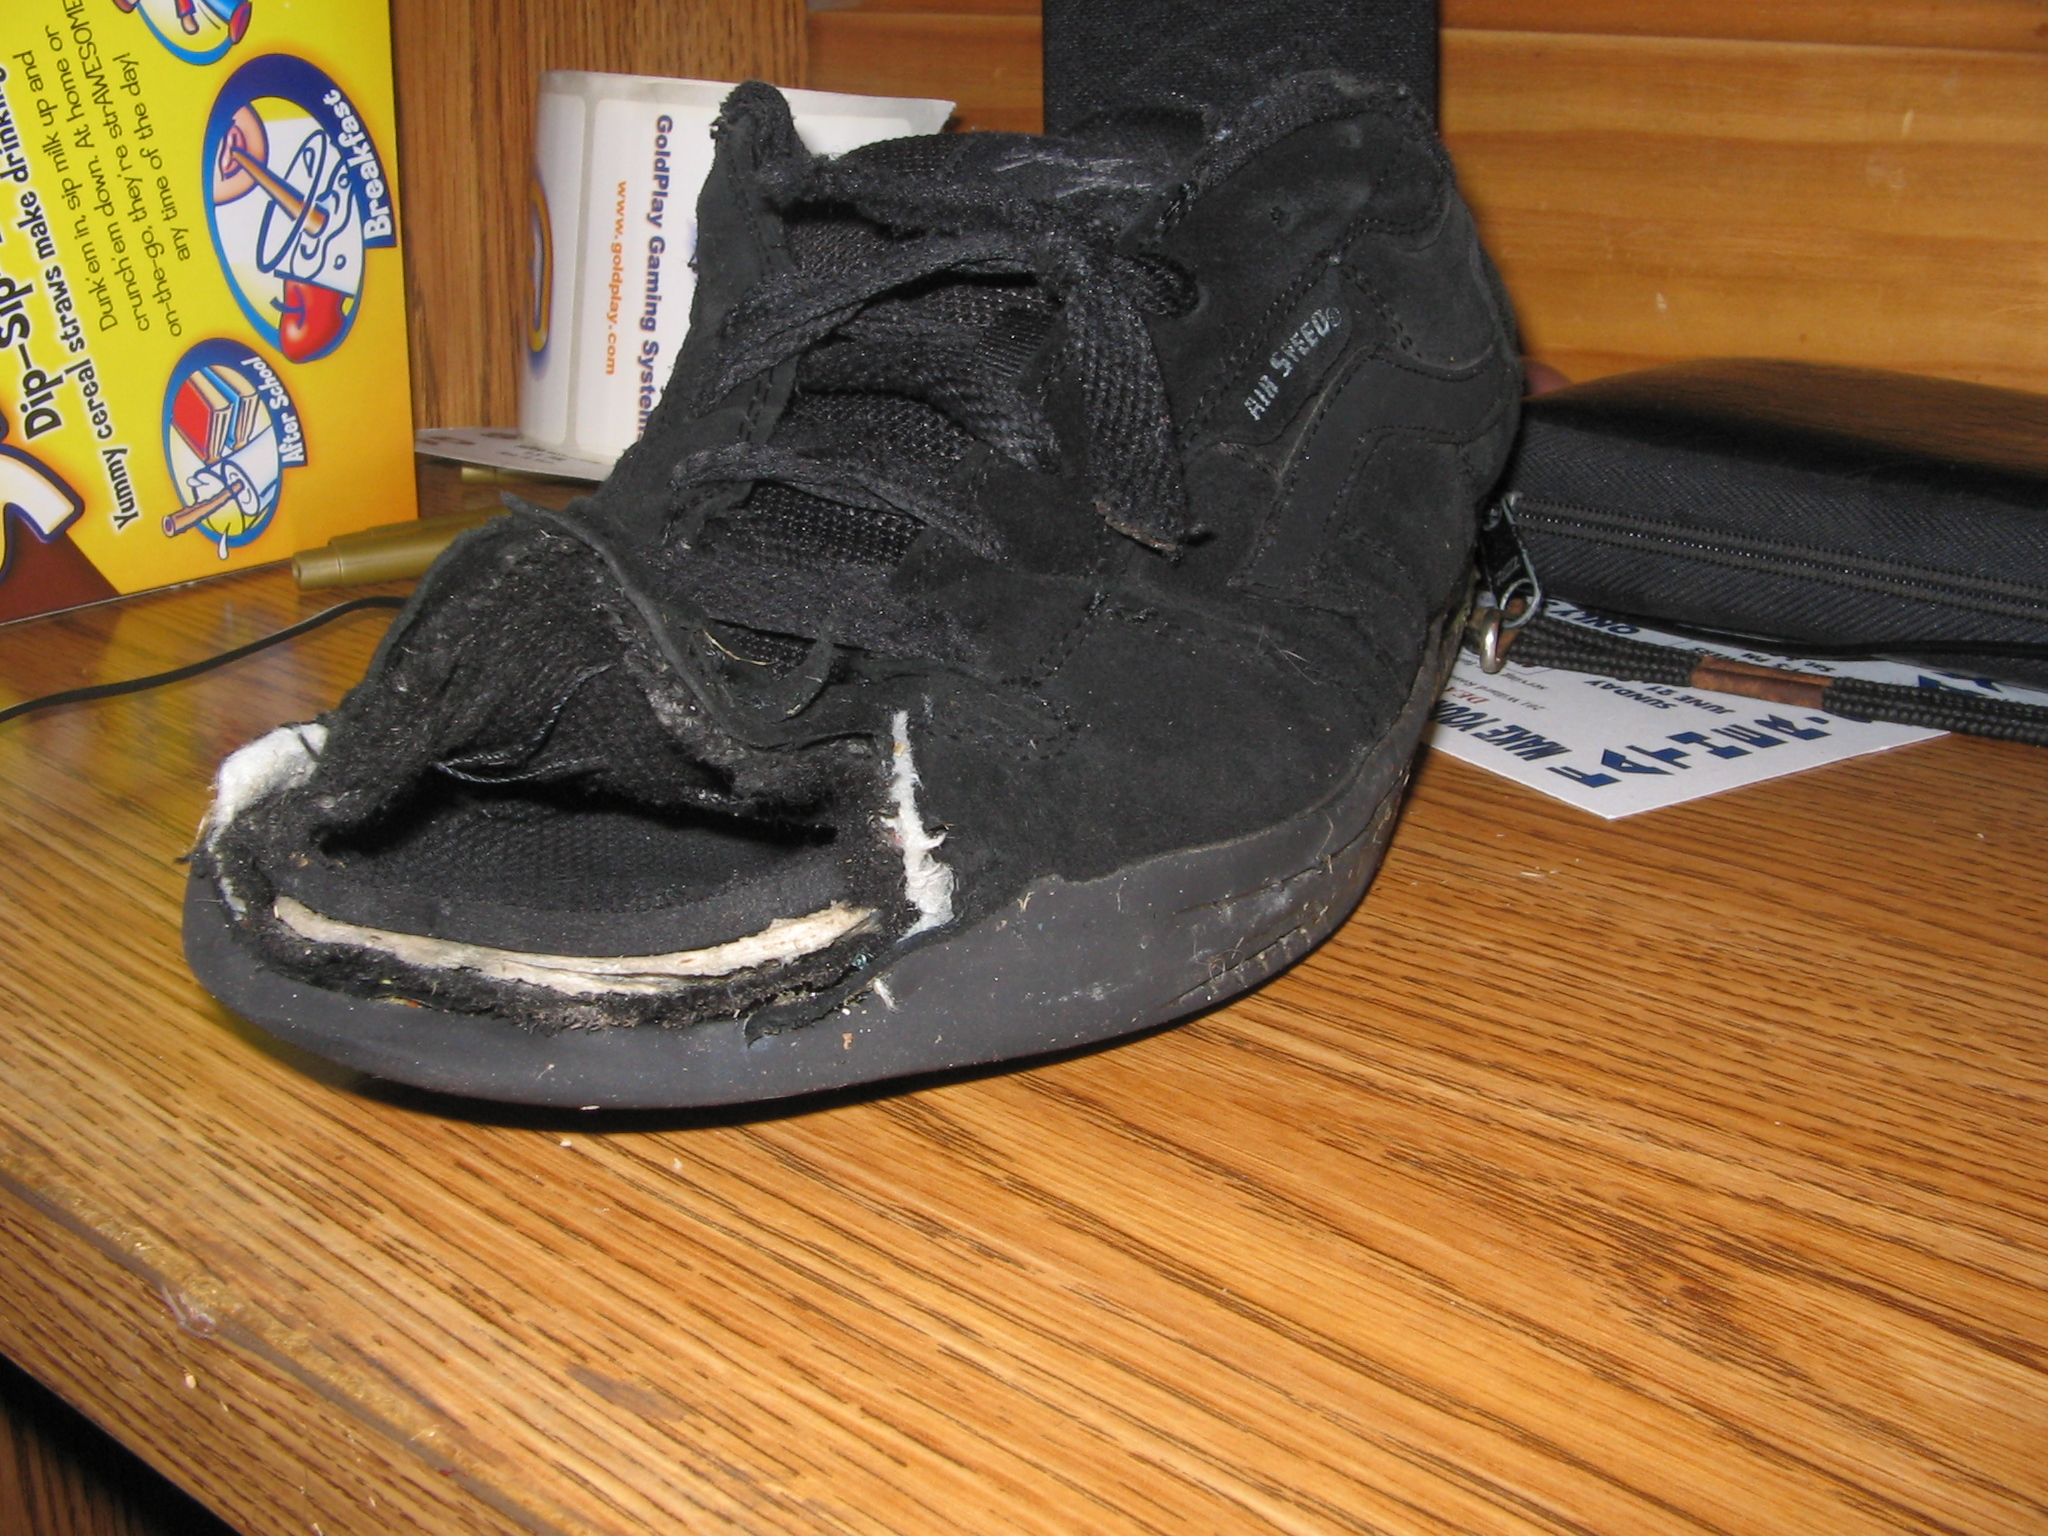 f138103ebac3 File Walmart-shoes.jpg - Wikimedia Commons